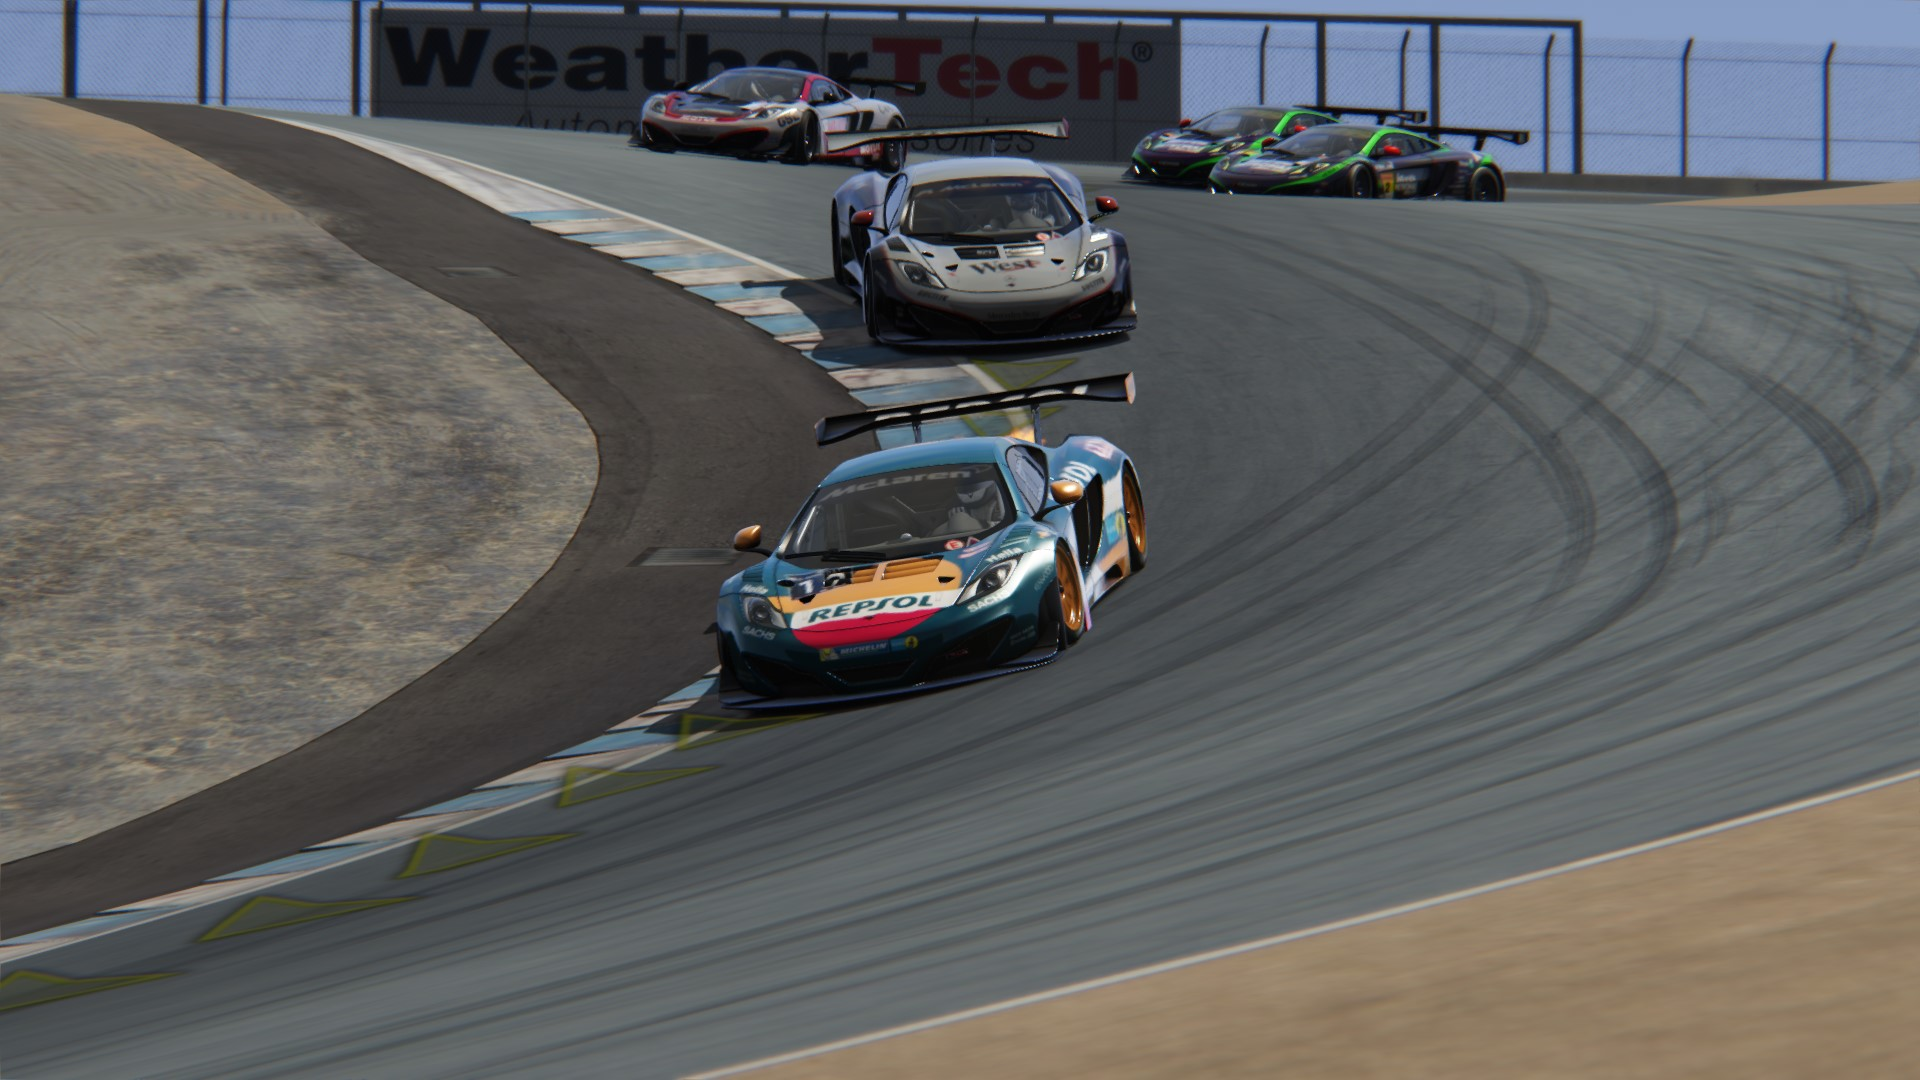 Screenshot_mclaren_mp412c_gt3_ks_laguna_seca_23-12-117-15-22-35.jpg